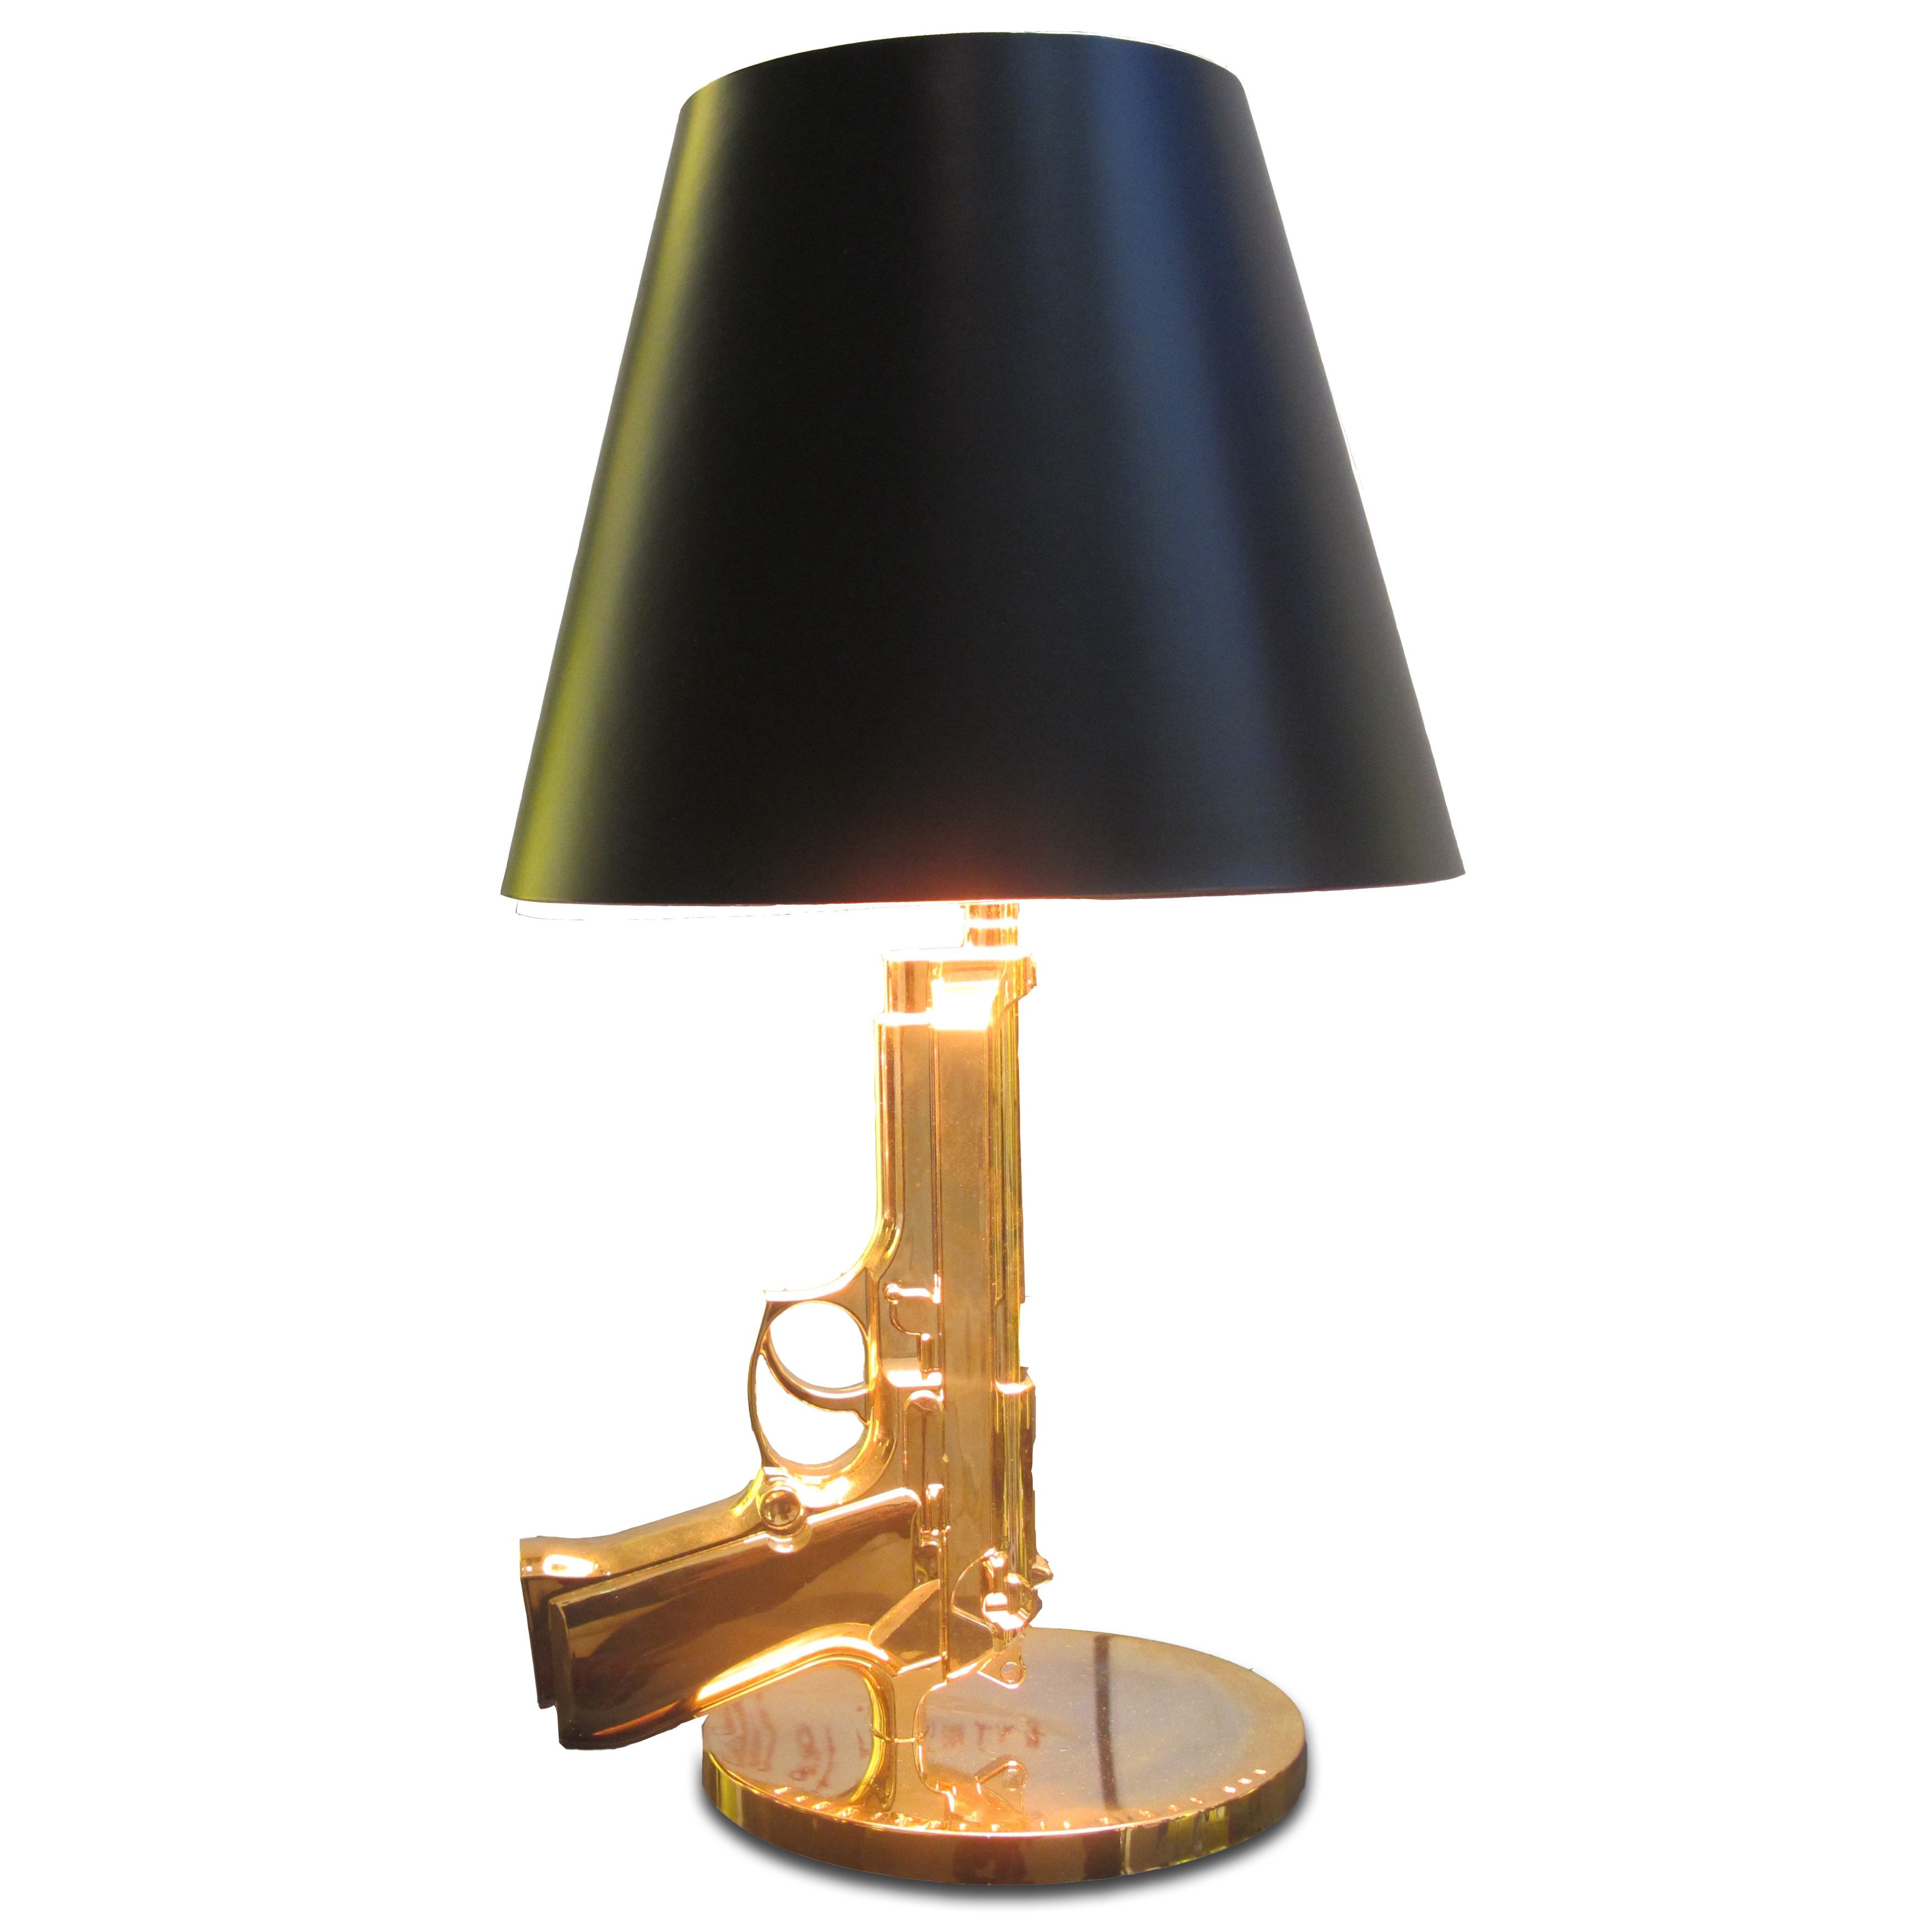 Gun shape home decorative table lamp, hotel project light from China ...